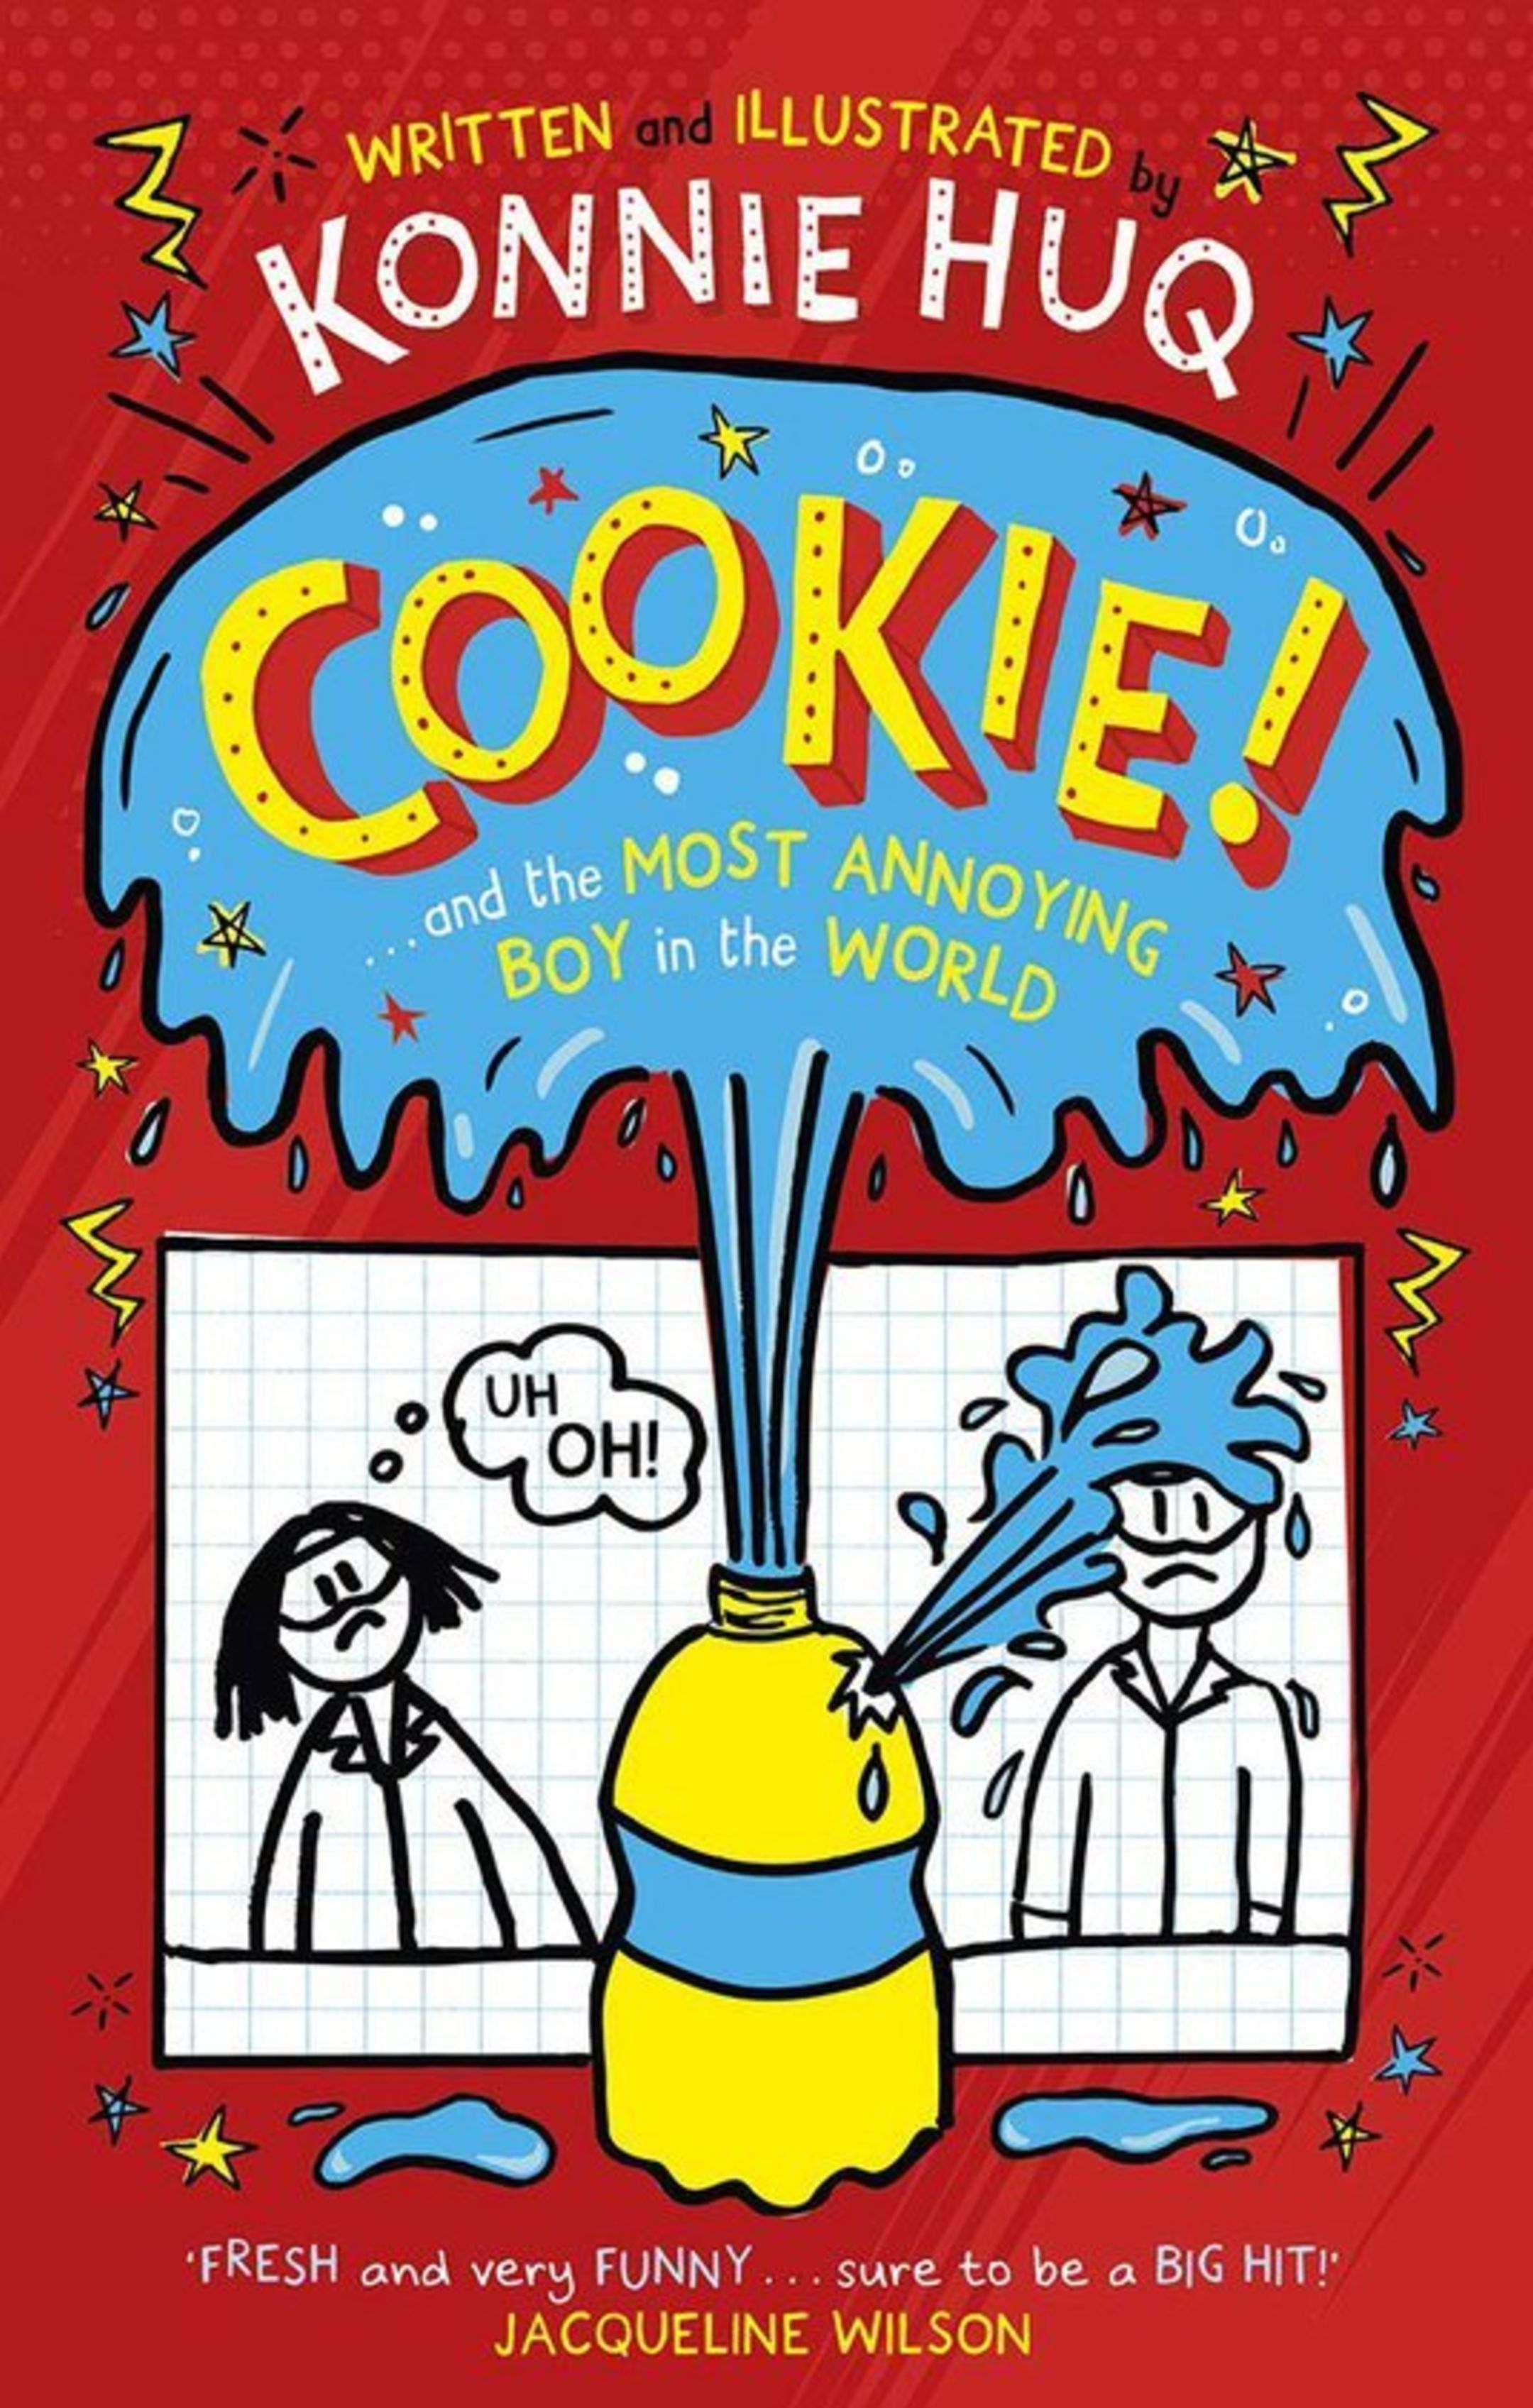 The book cover of Cookie and the Most Annoying Boy in the World, by Konnie Huq